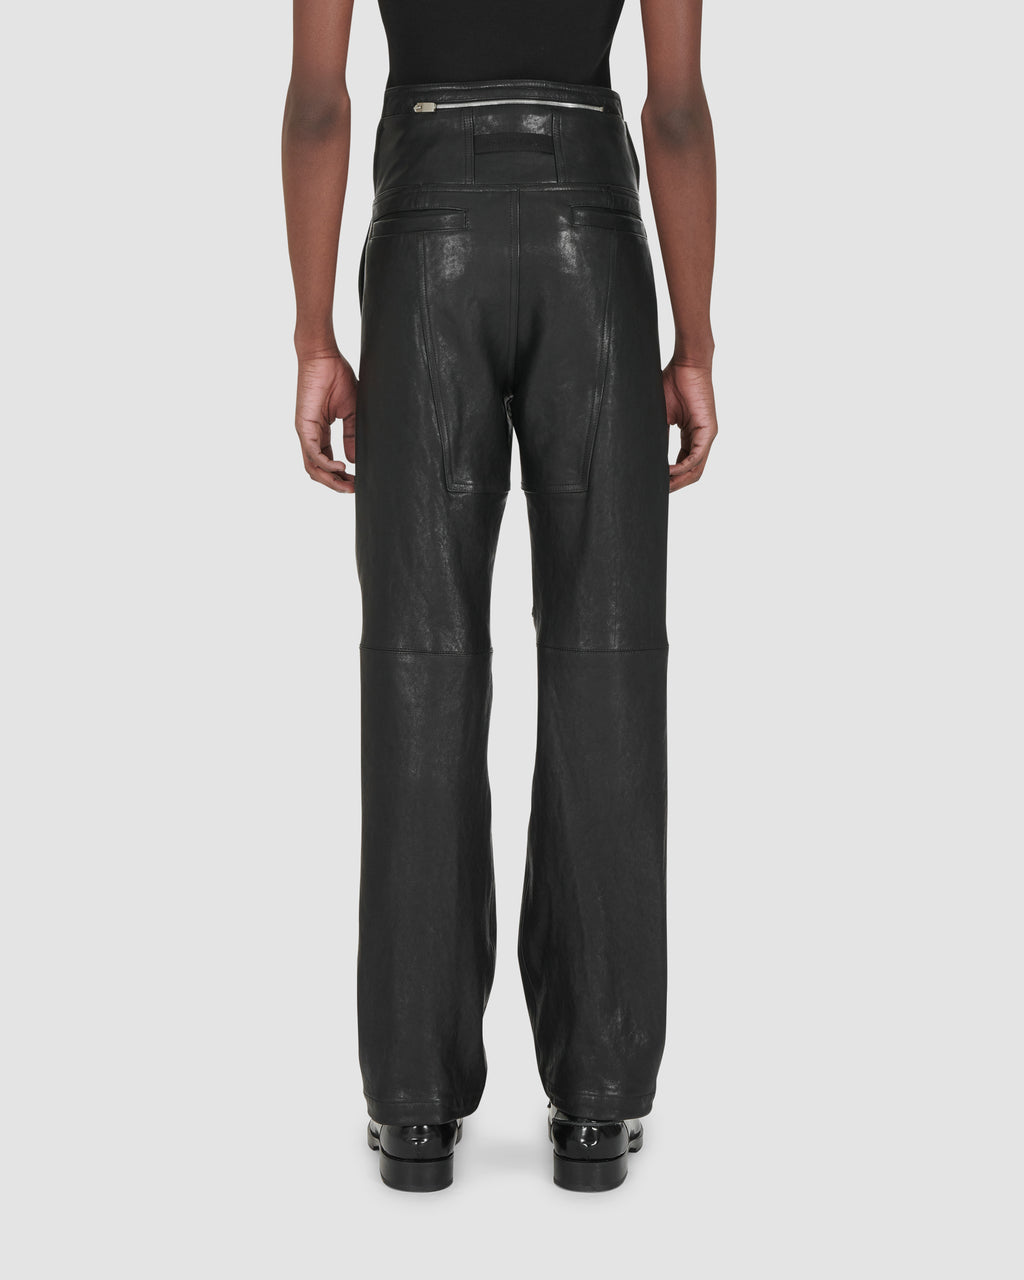 1017 ALYX 9SM | LEATHER FUORIPISTA PANT RUNWAY MADE TO ORDER | Pants | F20, FW20 PRE-ORDER, MEN